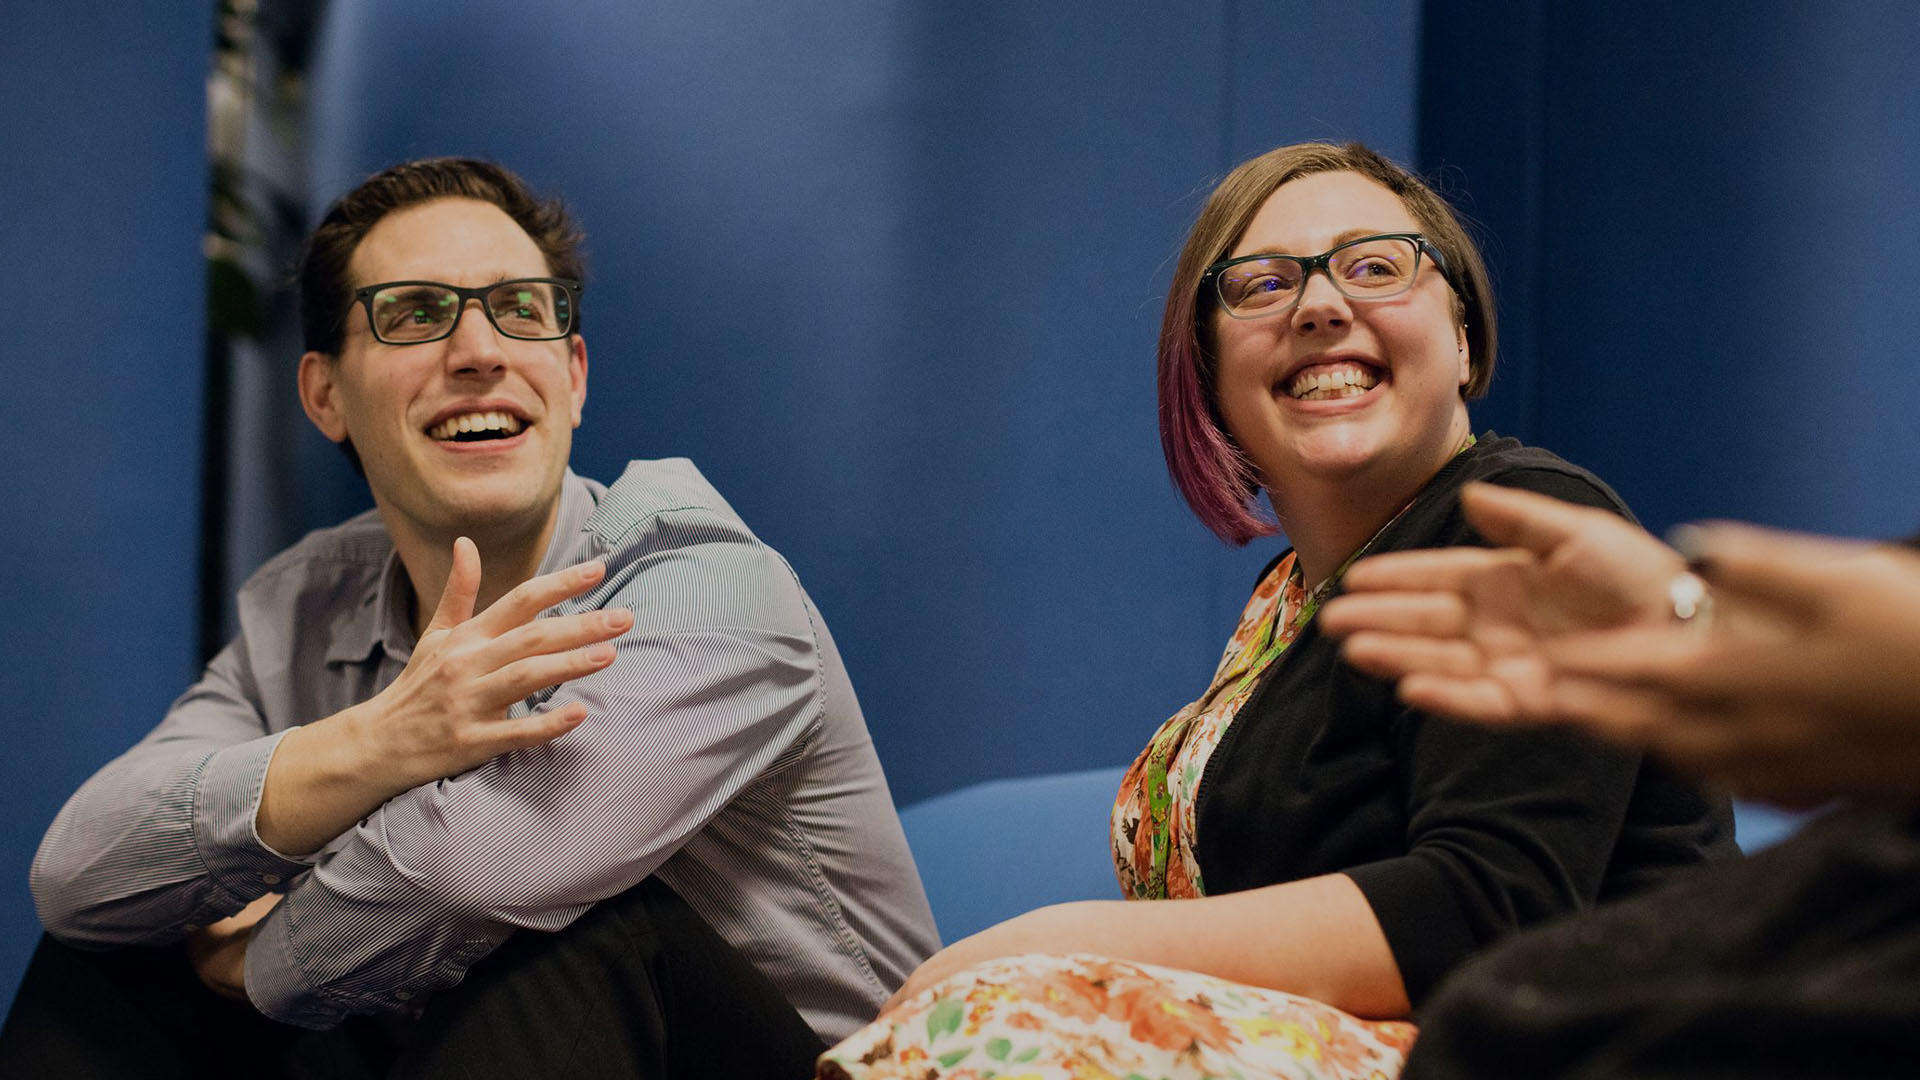 Man and woman both wearing glasses sat on sofa with big smiles on their faces